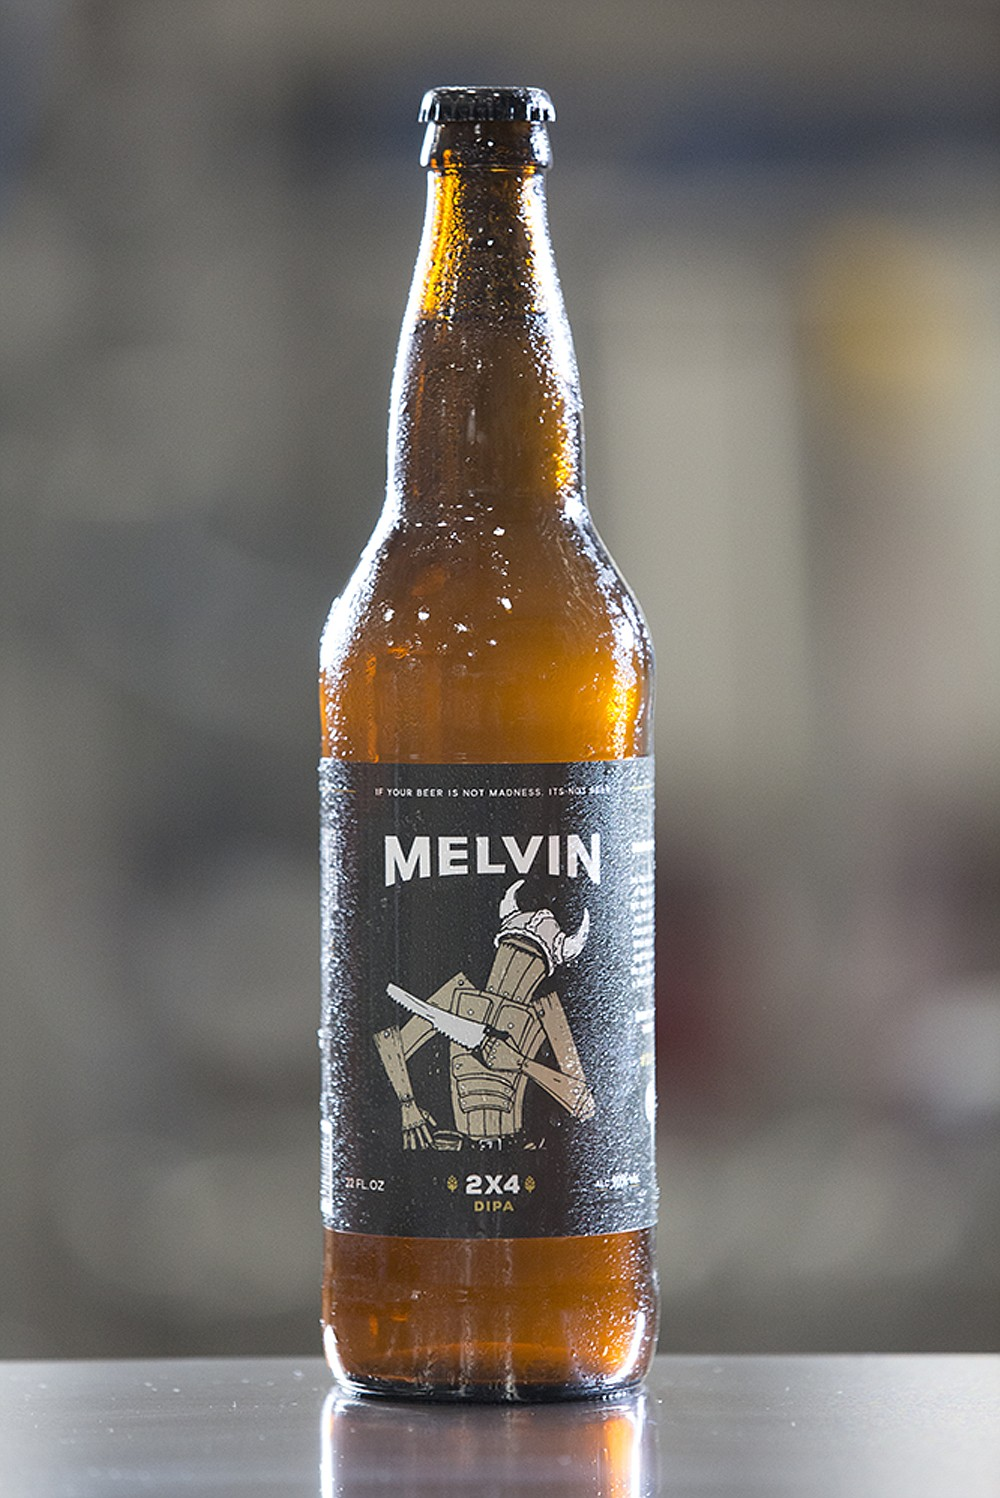 "Juicy, resinous and a deceptively drinkable 10% ABV, 2x4 parades what Melvin's own brash tasting notes describe as the ""Mad floral, citrusy, and clean taste of hop talent."""